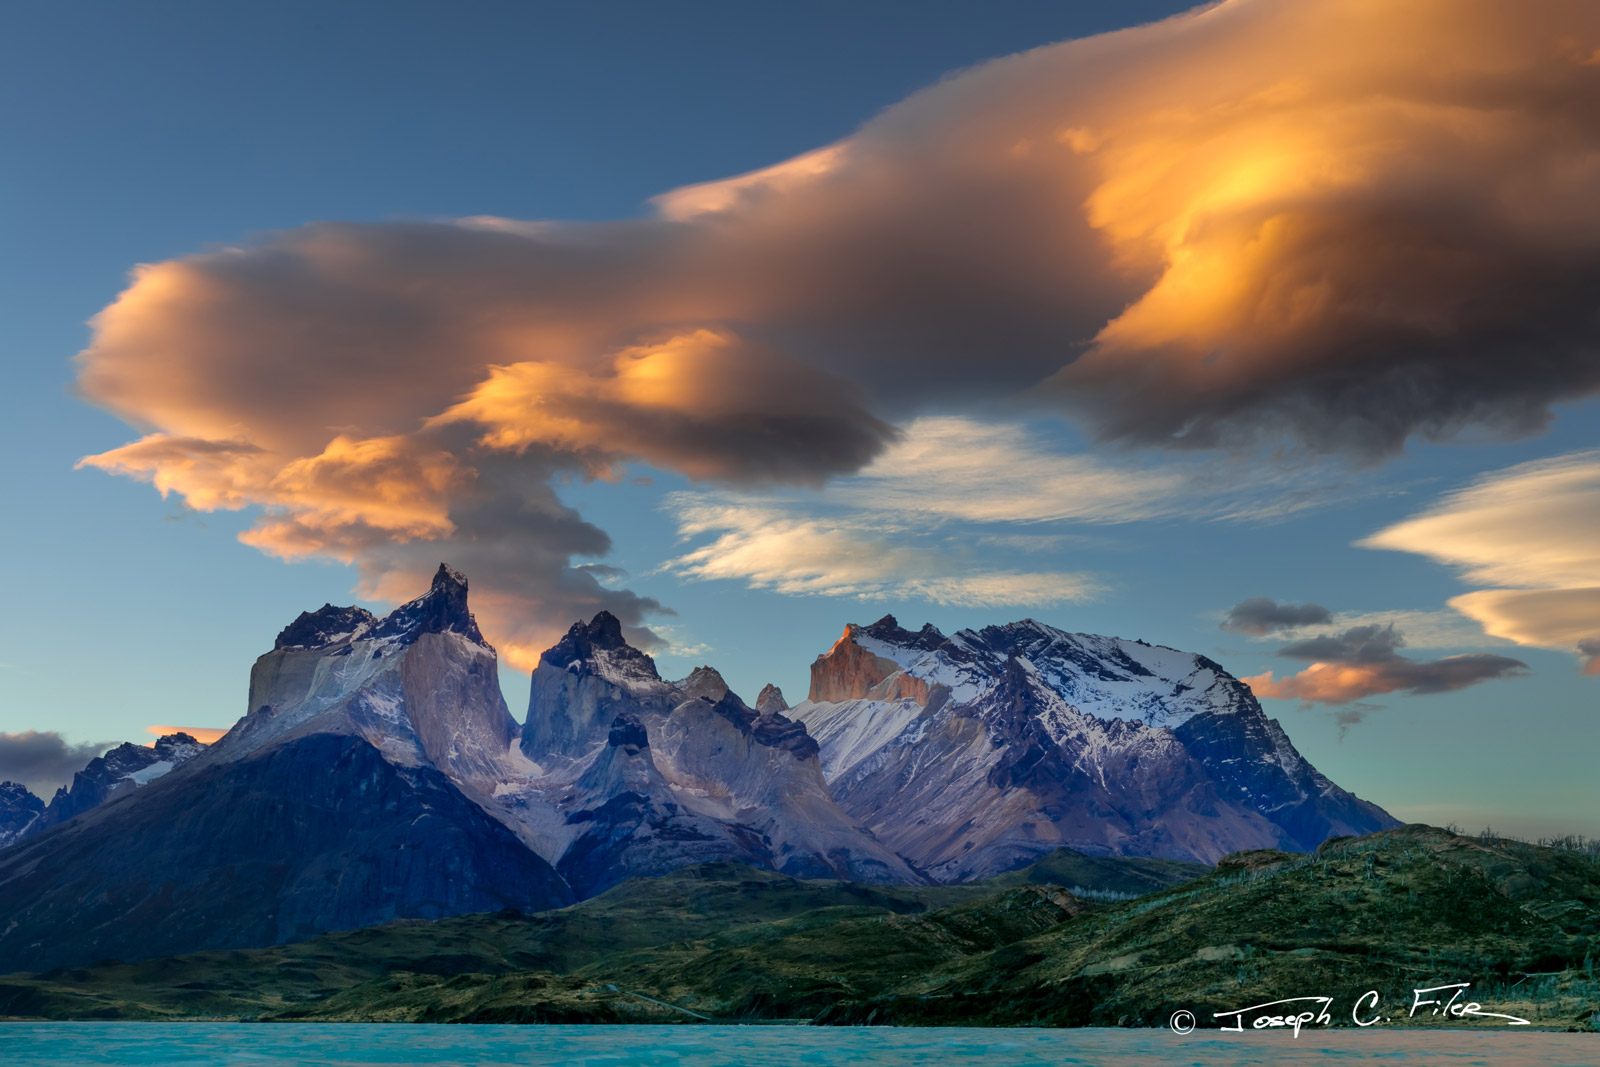 Chile, Patagonia, Torres del Paine, Mountain, Lenticular, Clouds, limited edition, photograph, fine art, landscape, photo